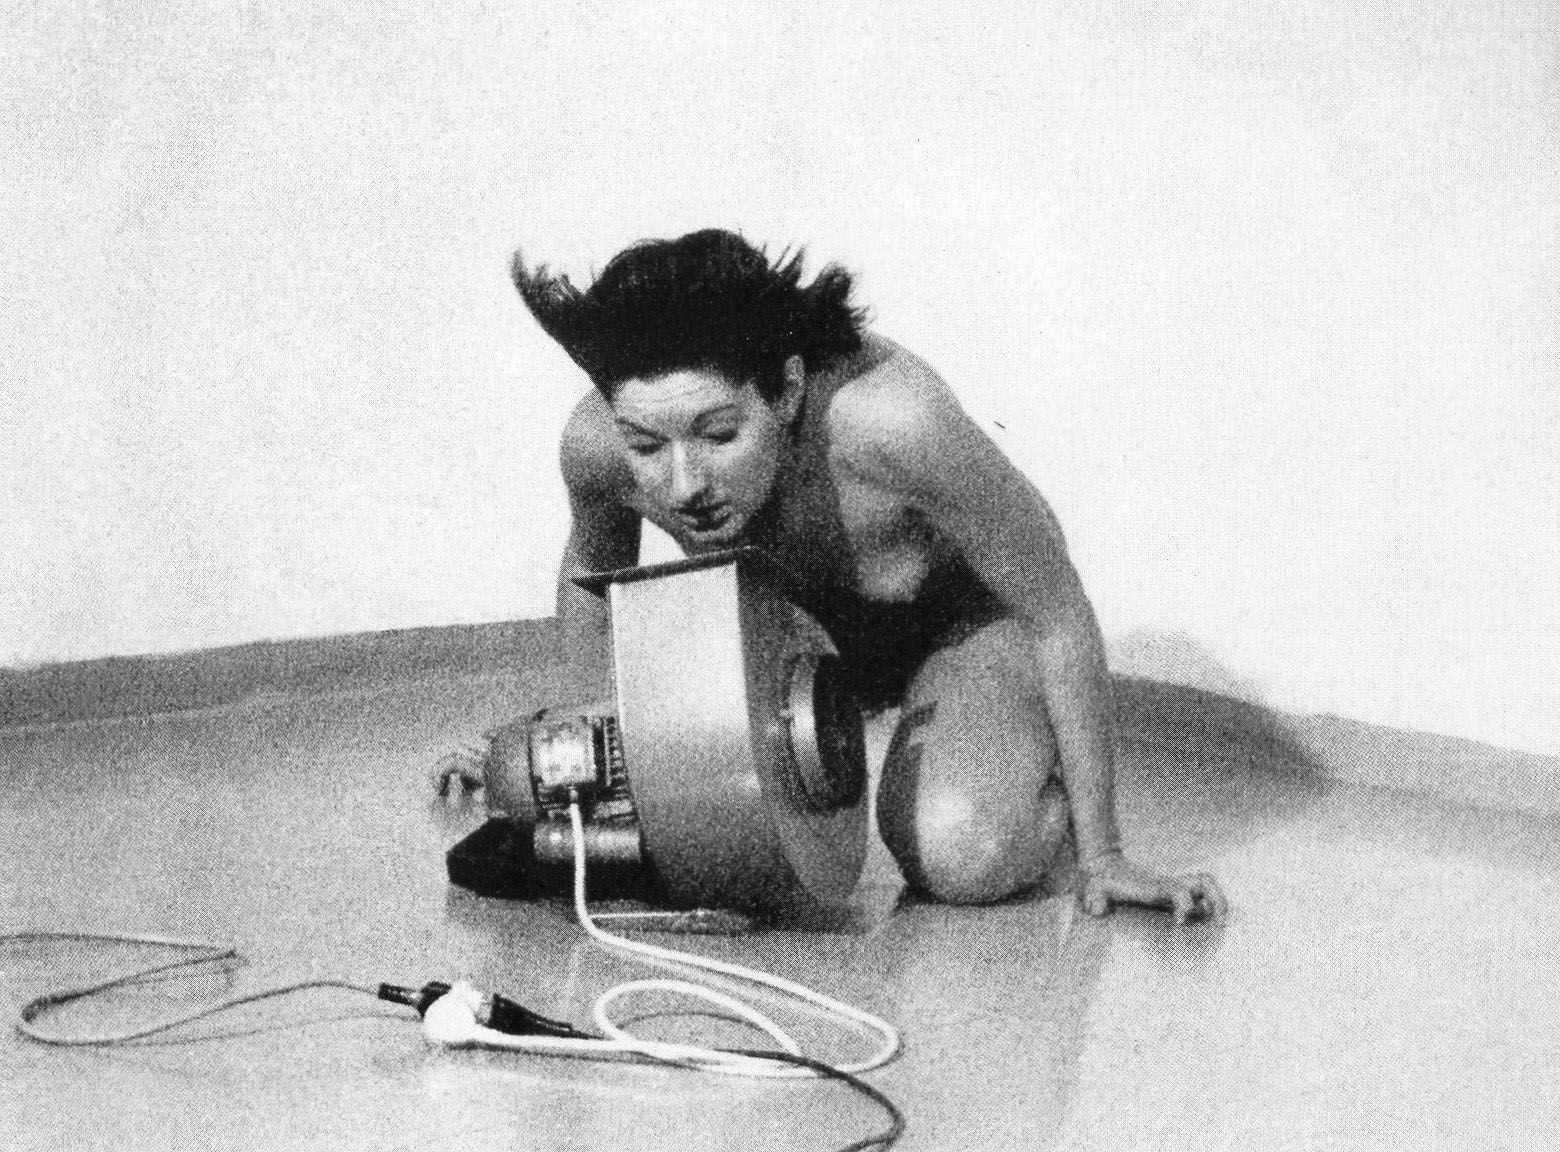 Abramović kneeled alone and naked in a room with a high-power industrial fan.